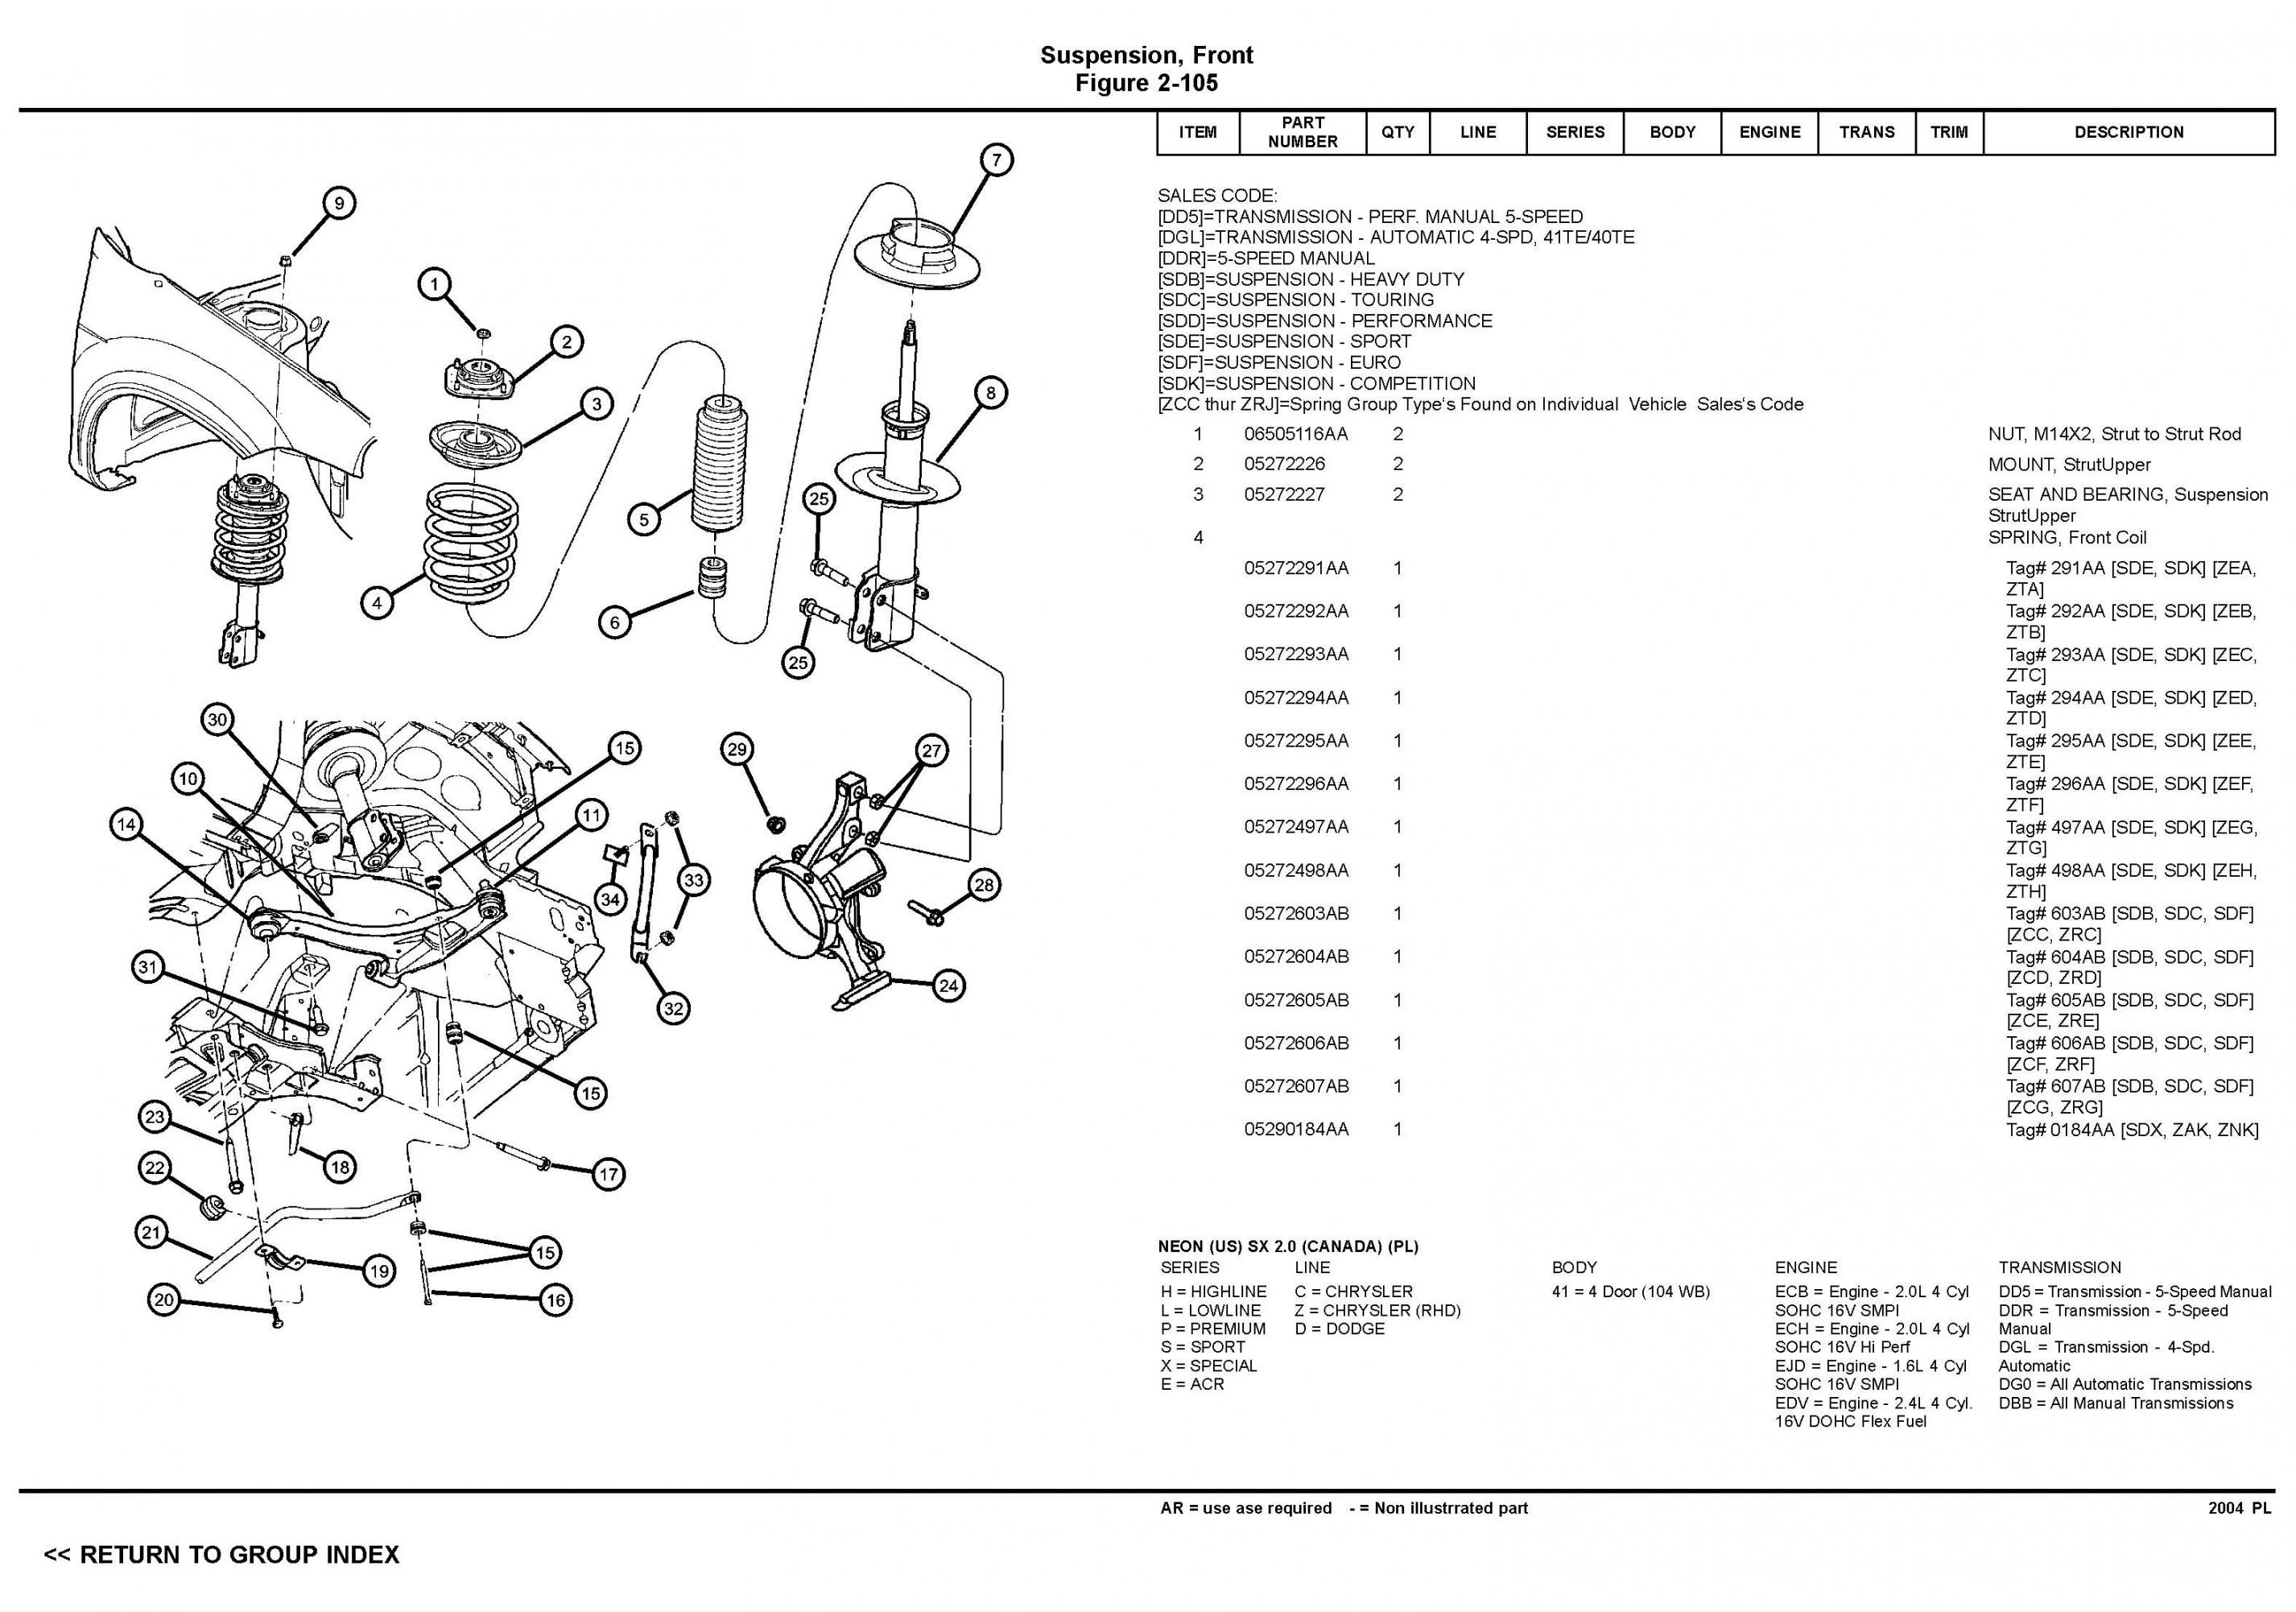 Car Rear Suspension Diagram Srt 4 Suspension Faq Dodge Srt forum Of Car Rear Suspension Diagram